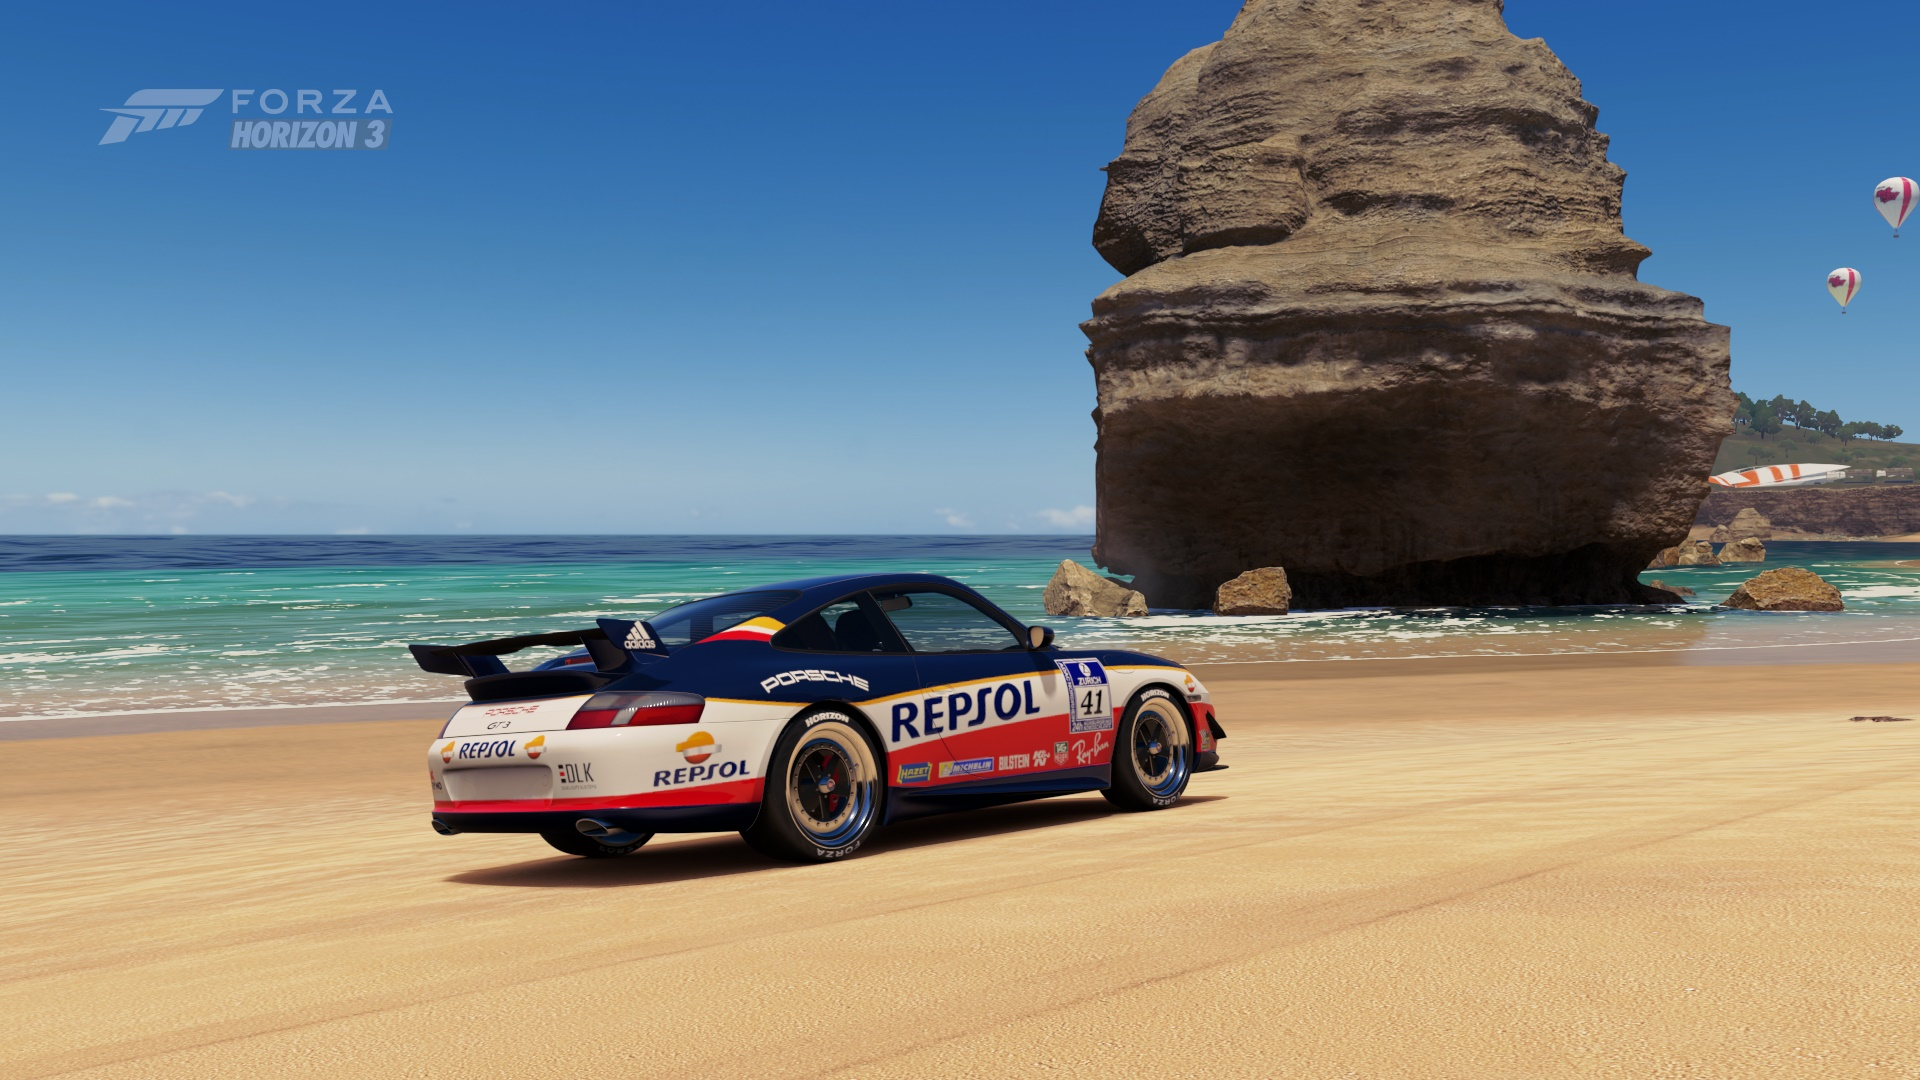 forza horizon 3 livery contests 38 contest archive forza motorsport forums. Black Bedroom Furniture Sets. Home Design Ideas